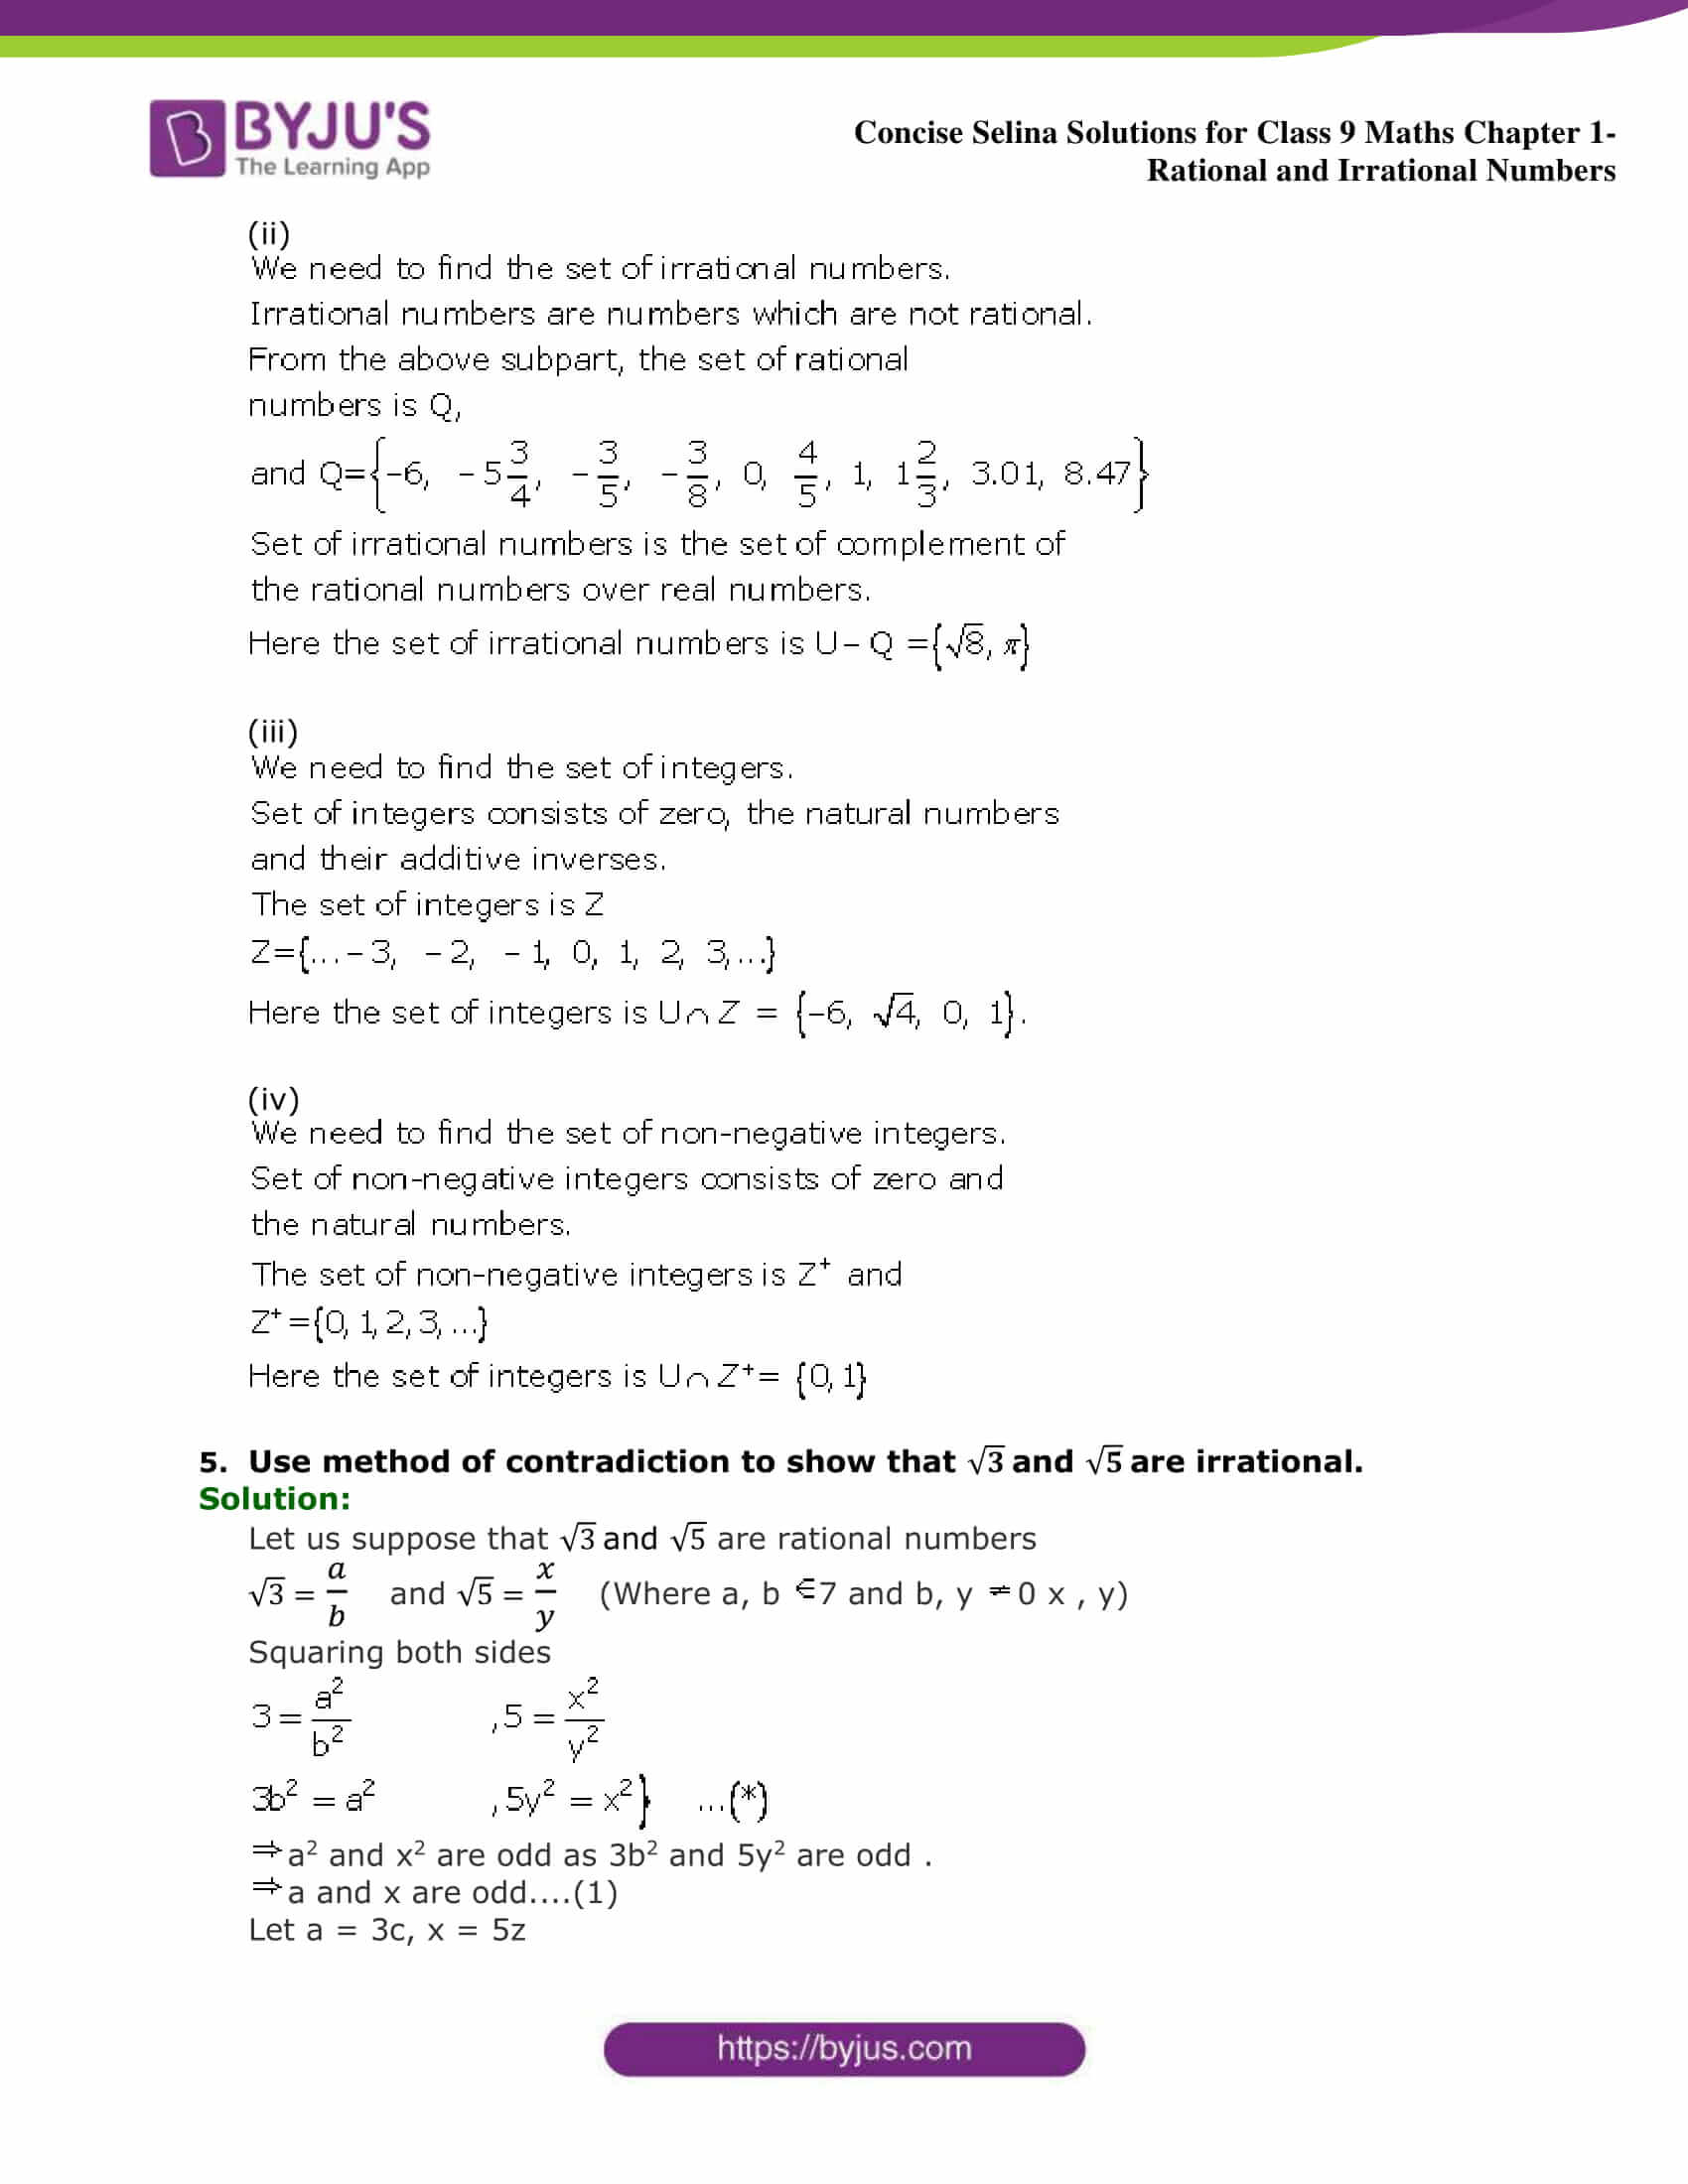 Worksheets On Rational And Irrational Numbers For Grade 9